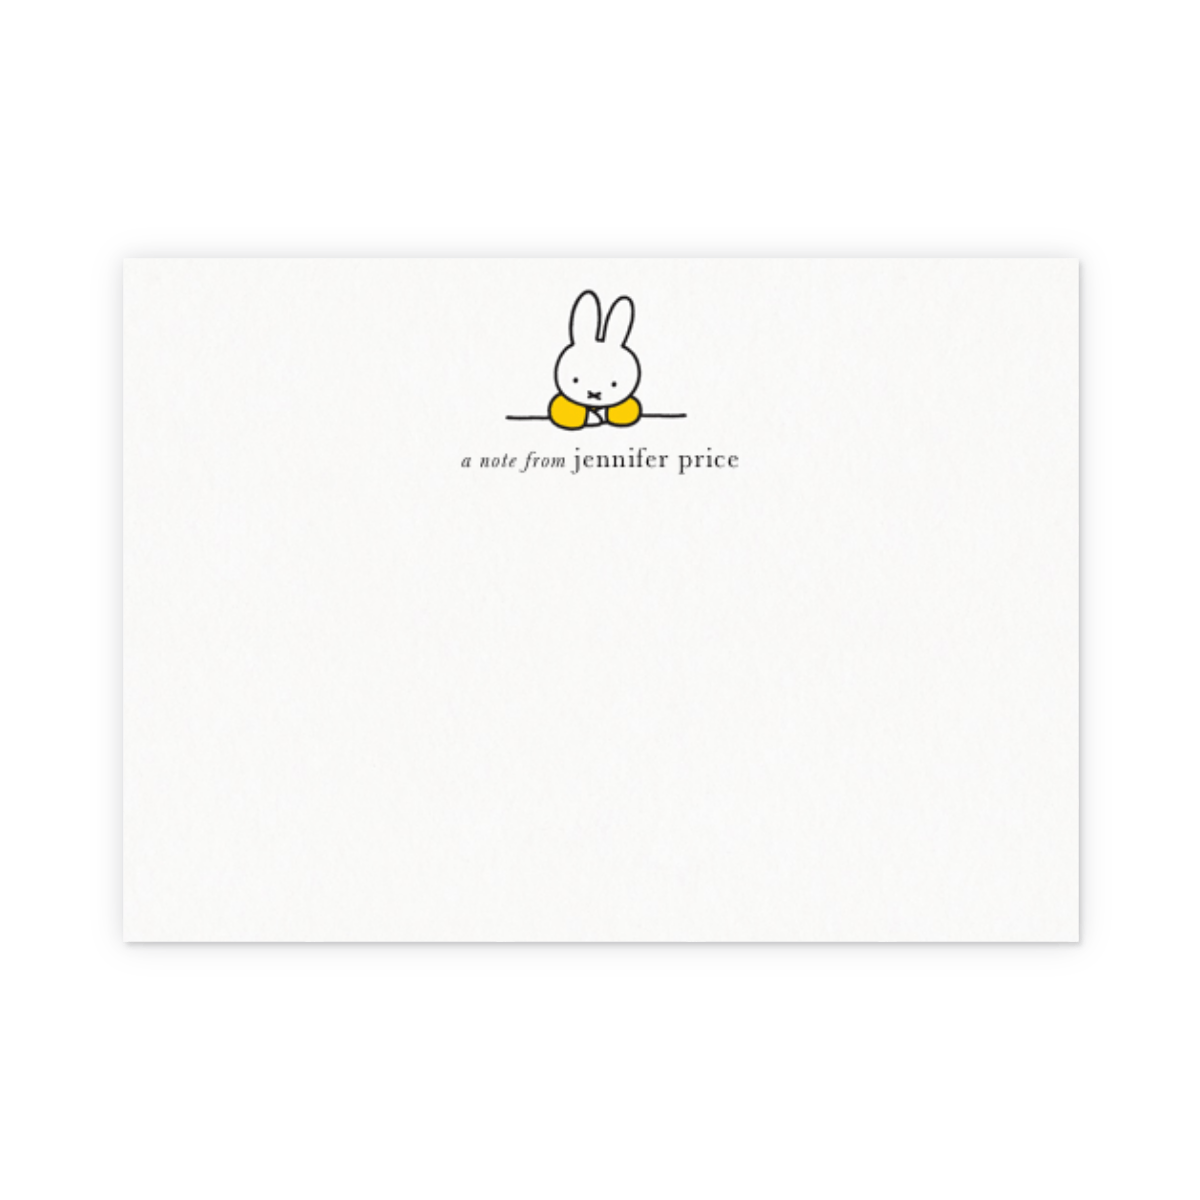 Https%3a%2f%2fwww.papier.com%2fproduct image%2f95347%2f10%2fwrite with miffy 23870 front 1572434102.png?ixlib=rb 1.1